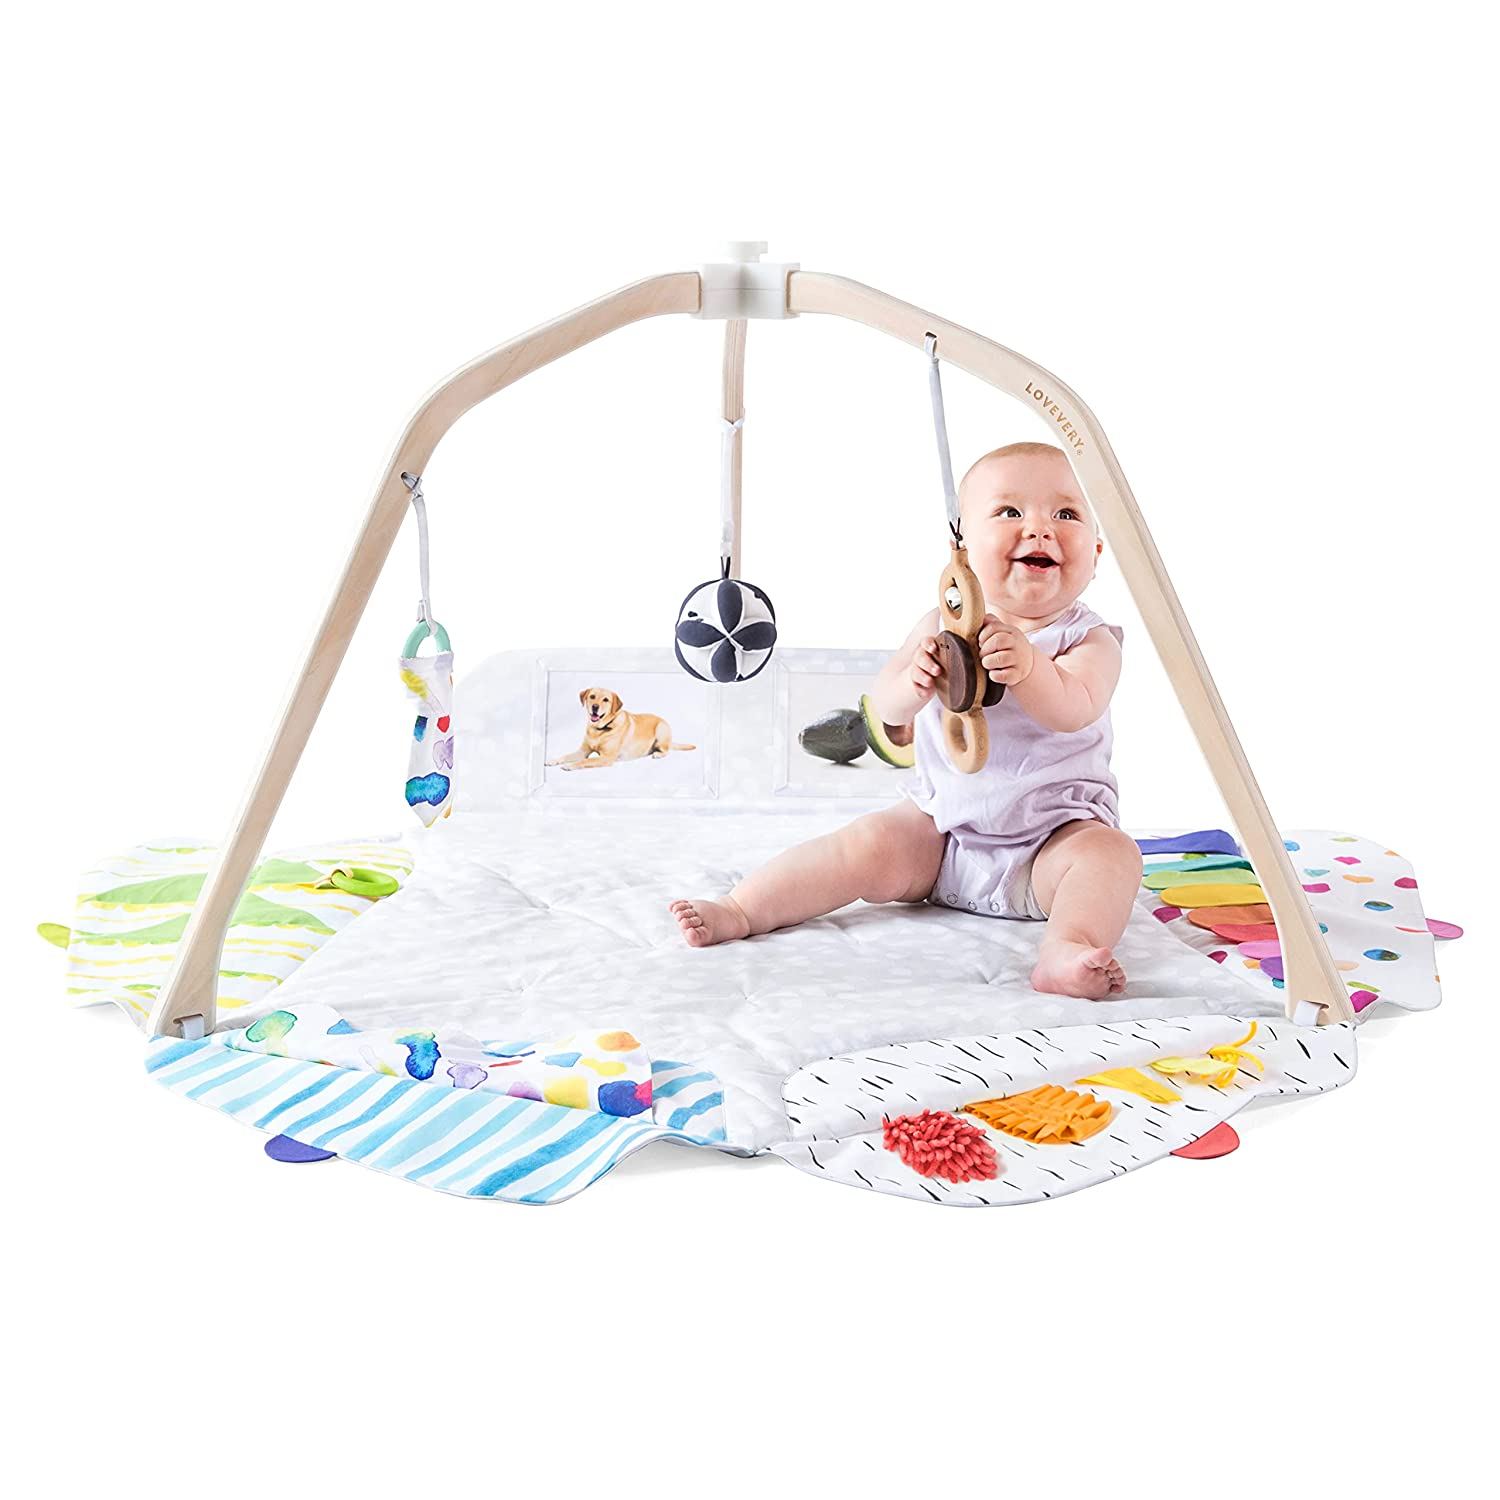 Lovevery The Play Gym, Stage-Based Baby Play Mat